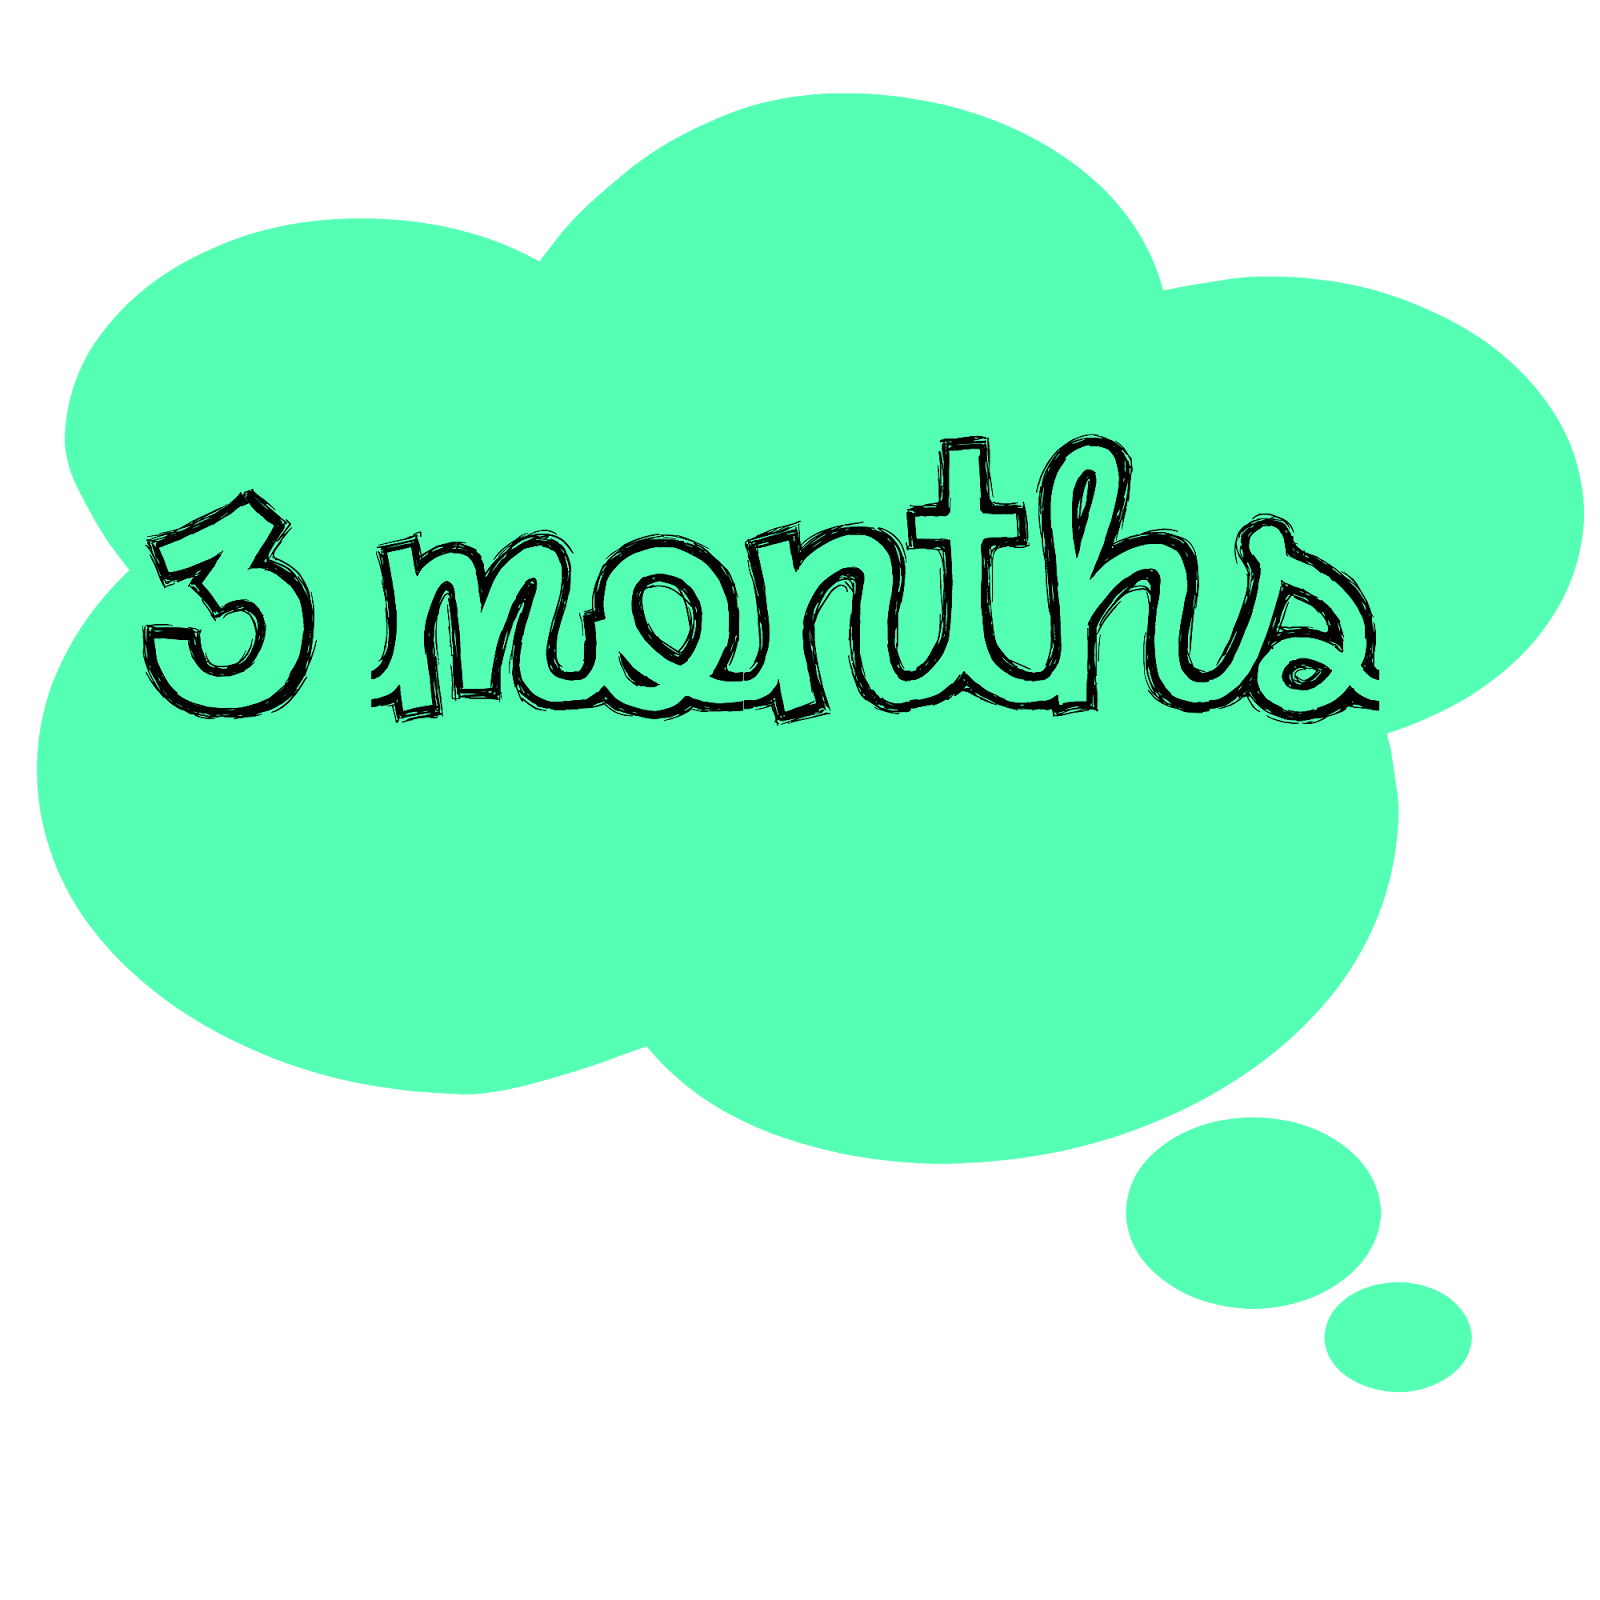 dating 4 months Assens